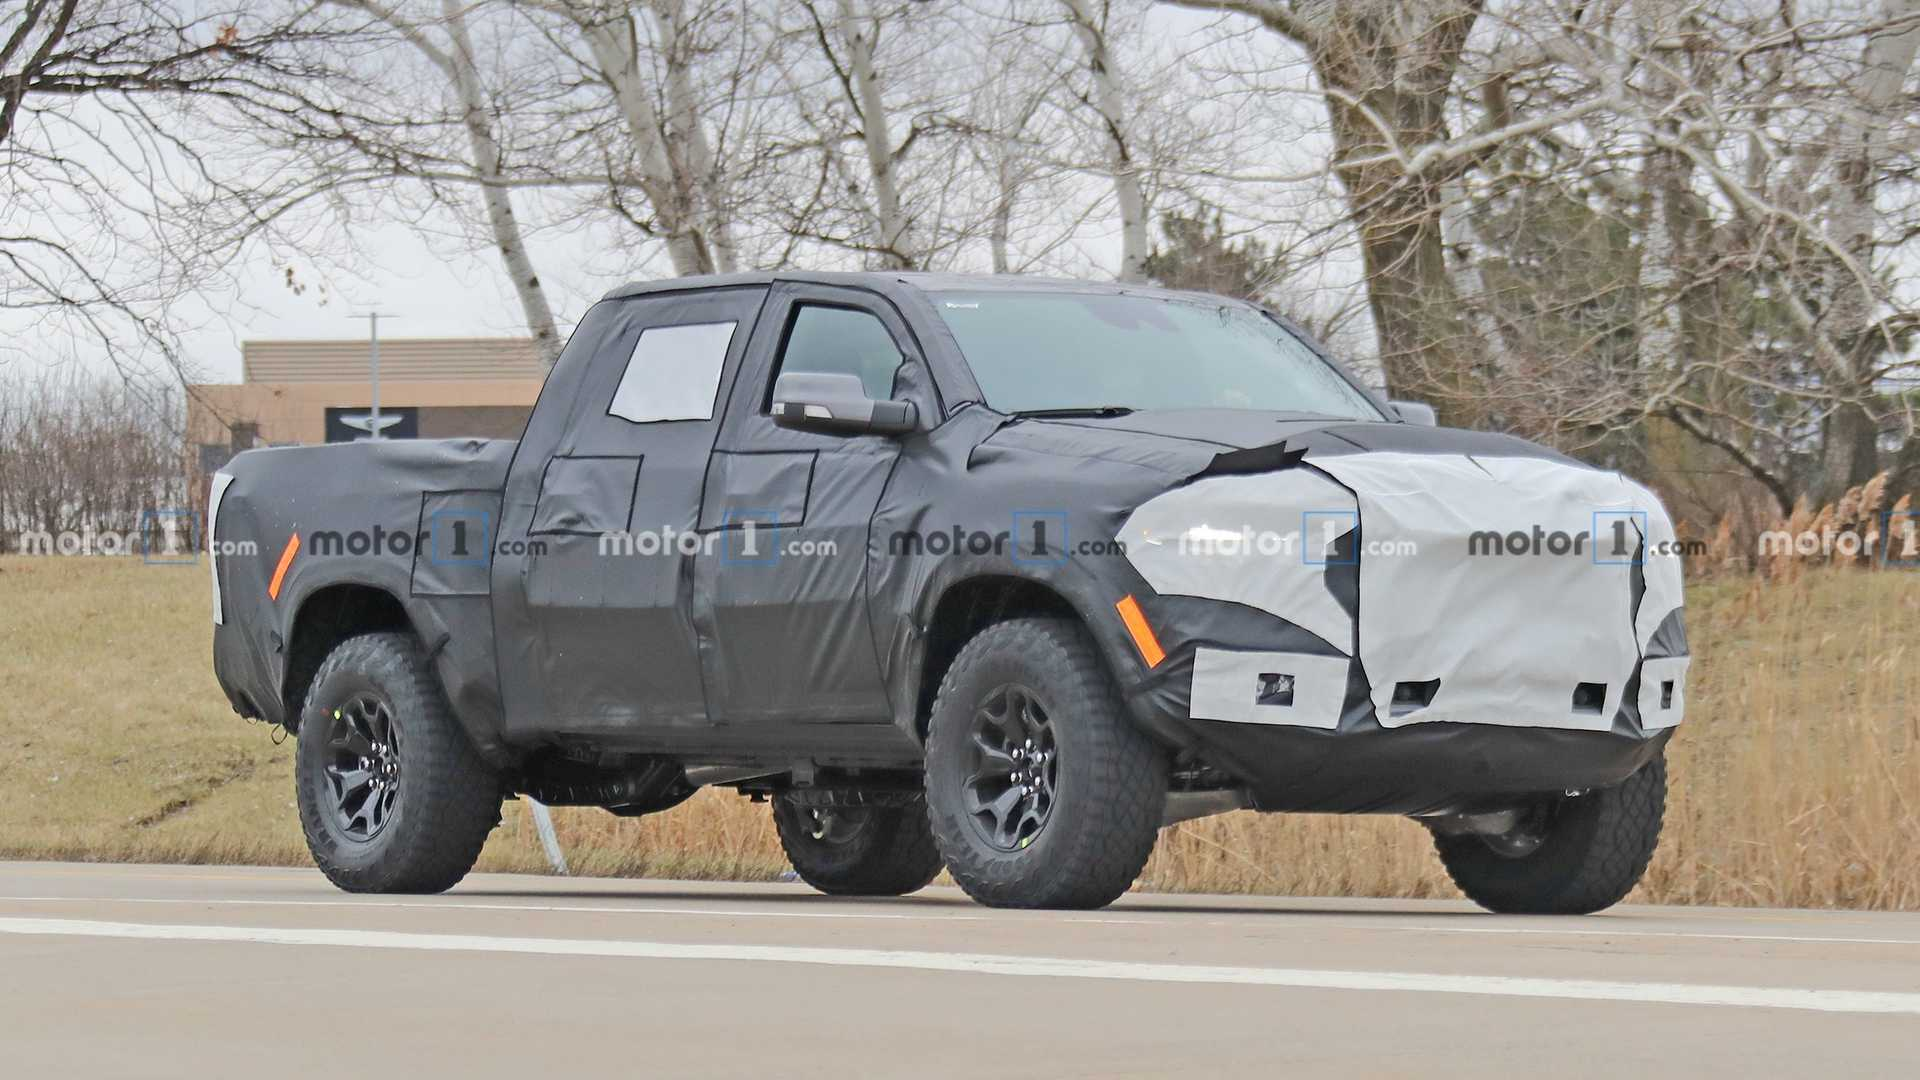 Ram Rebel Trx Specs Allegedly Leaked 700 Hp And 8 Speed Auto